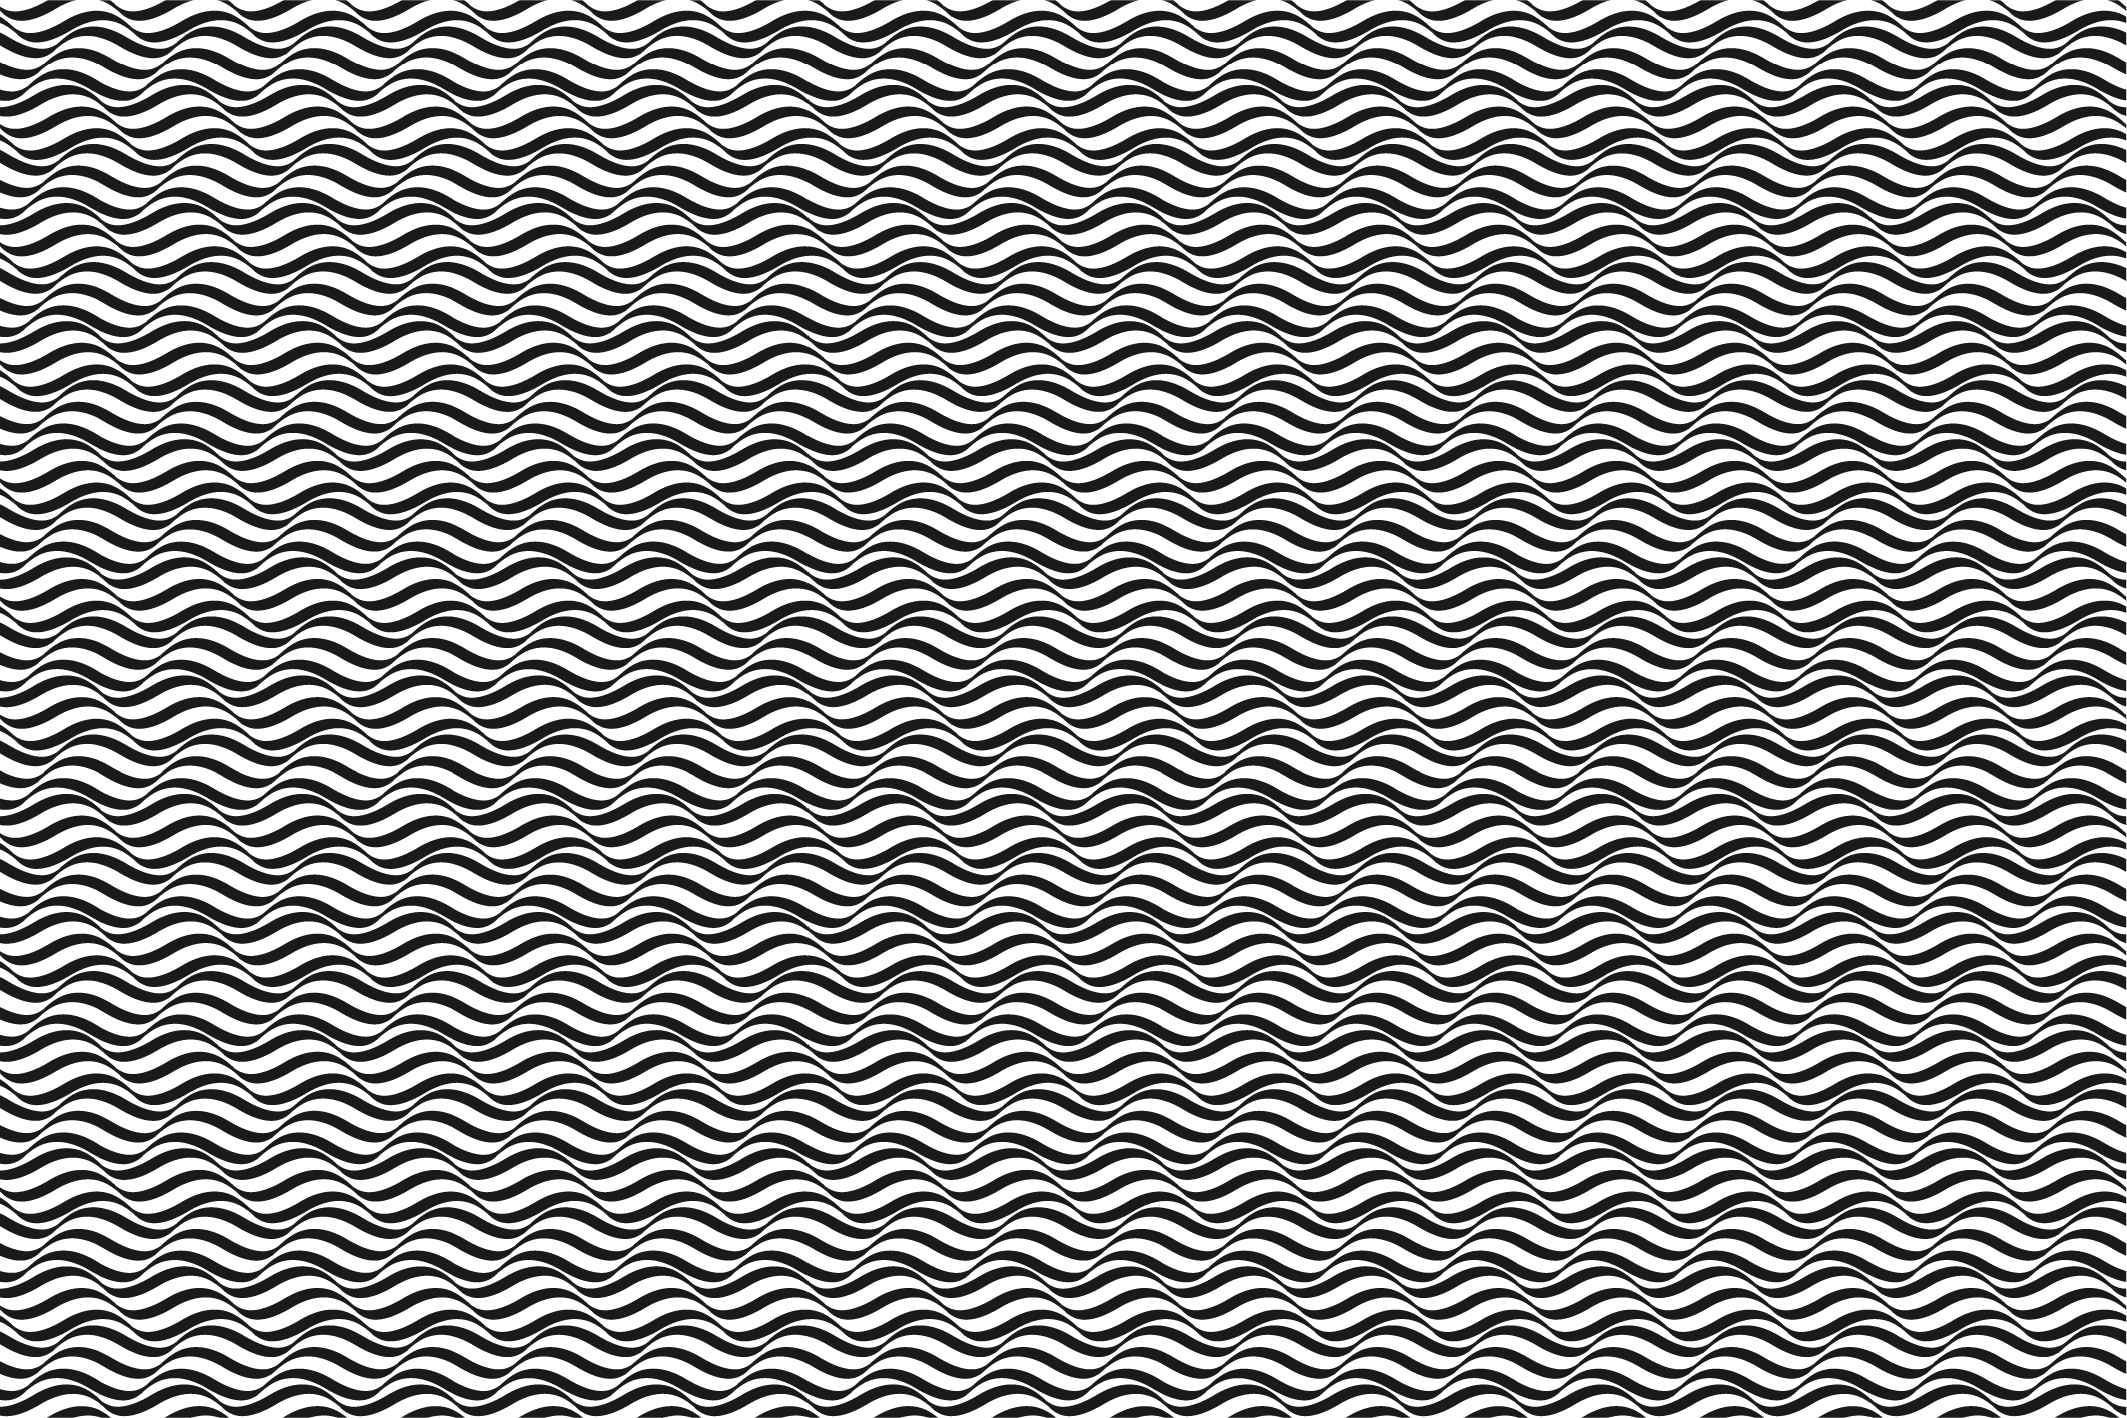 Geometric seamless patterns. B&W. example image 12